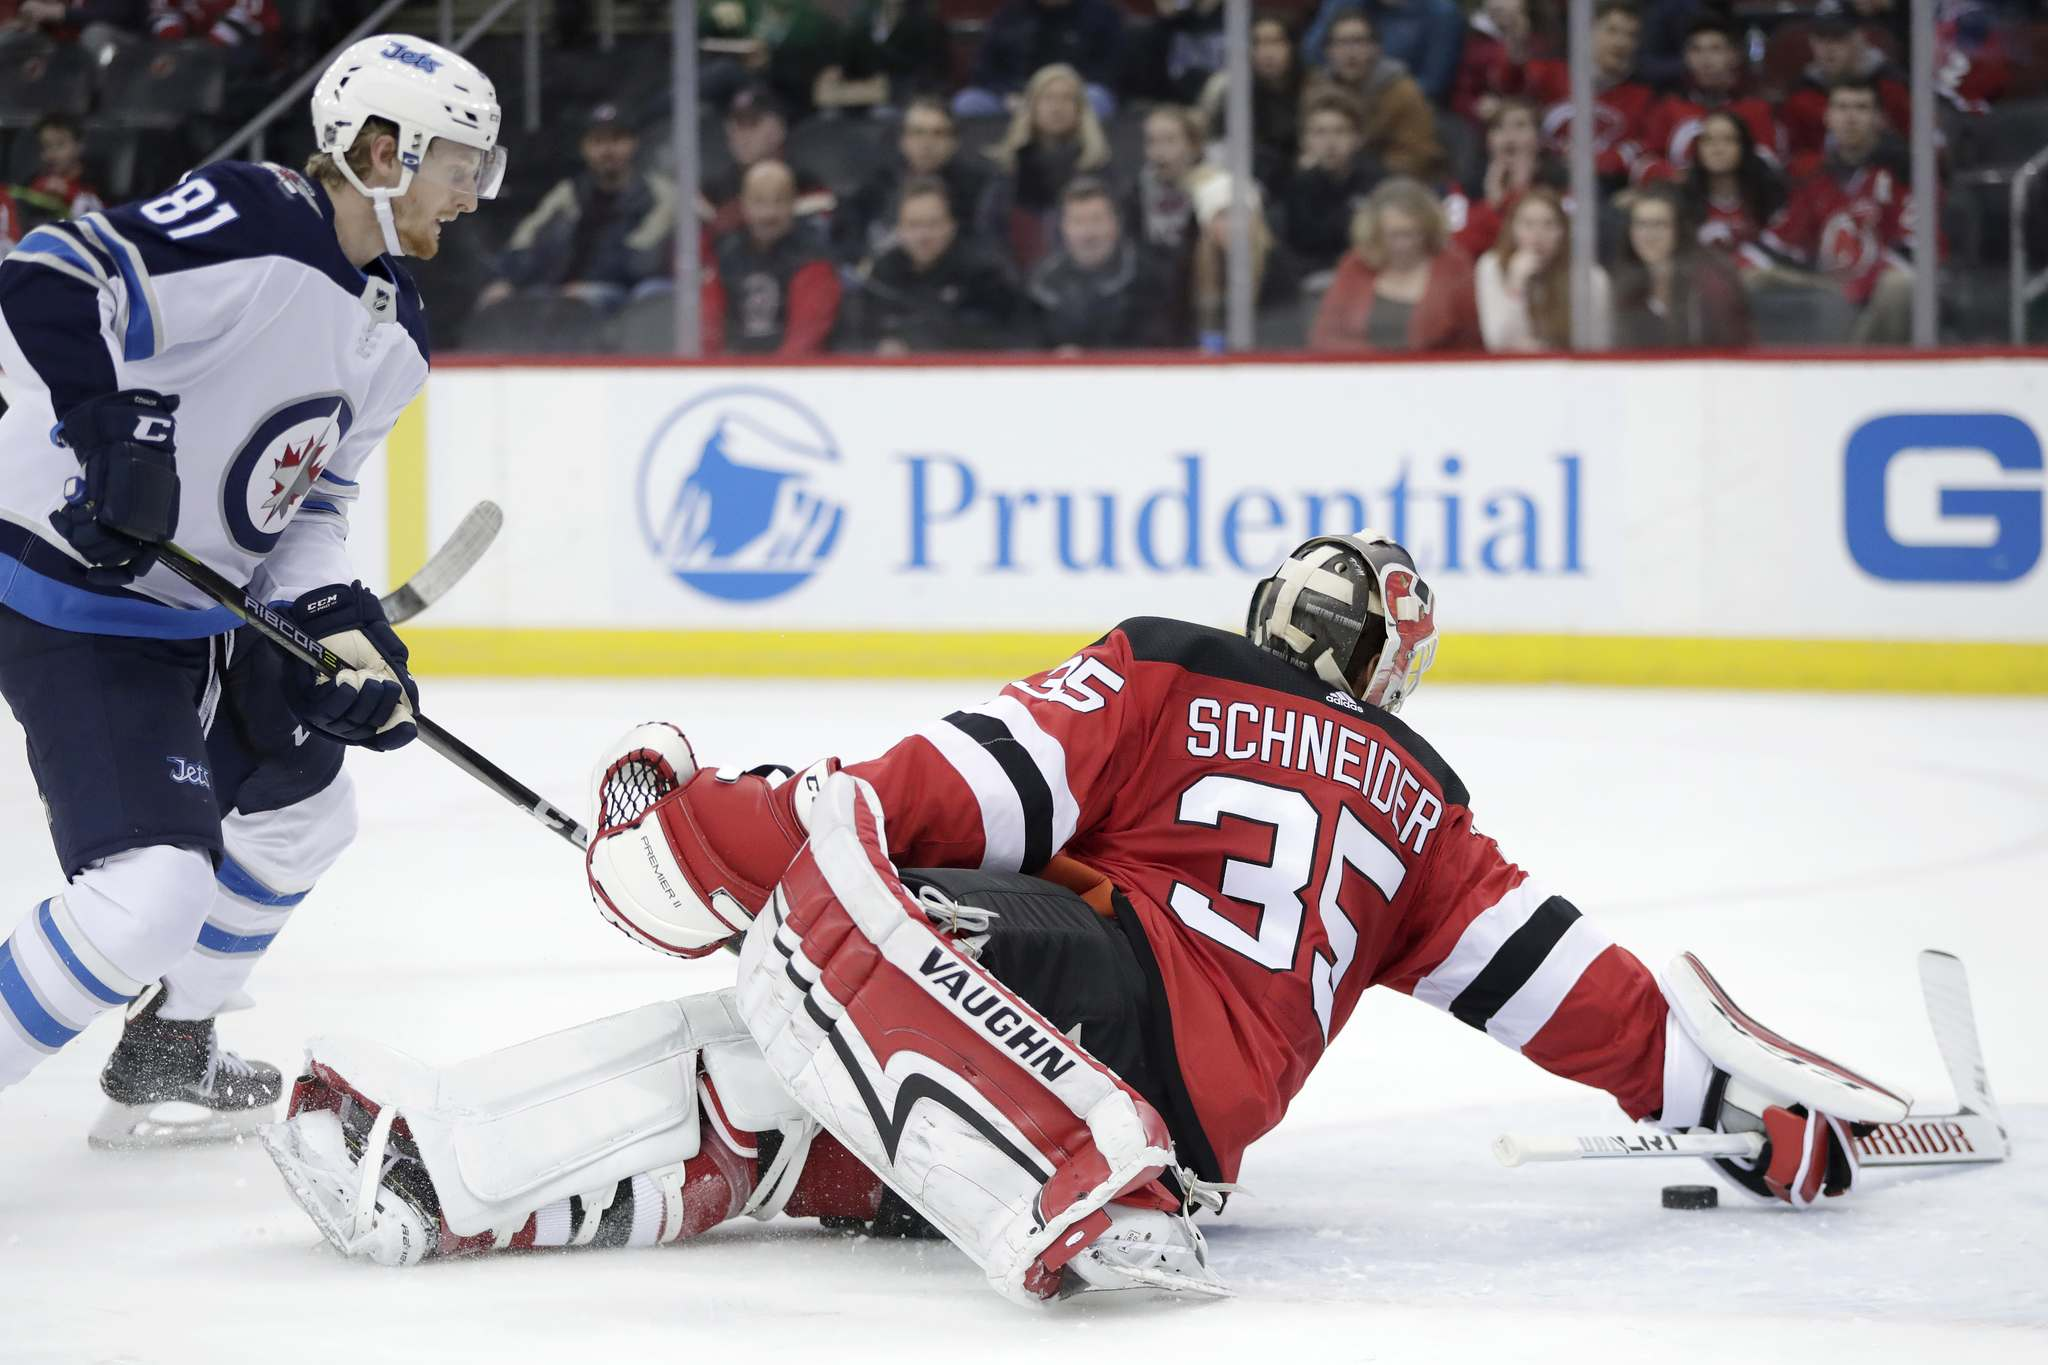 (AP Photo/Julio Cortez)</p><p>New Jersey Devils goaltender Cory Schneider (35) dives to deflect the puck out of his crease as Winnipeg Jets left wing Kyle Connor (81) attacks during the first period of an NHL hockey game, Thursday, March 8, 2018, in Newark, N.J. </p>